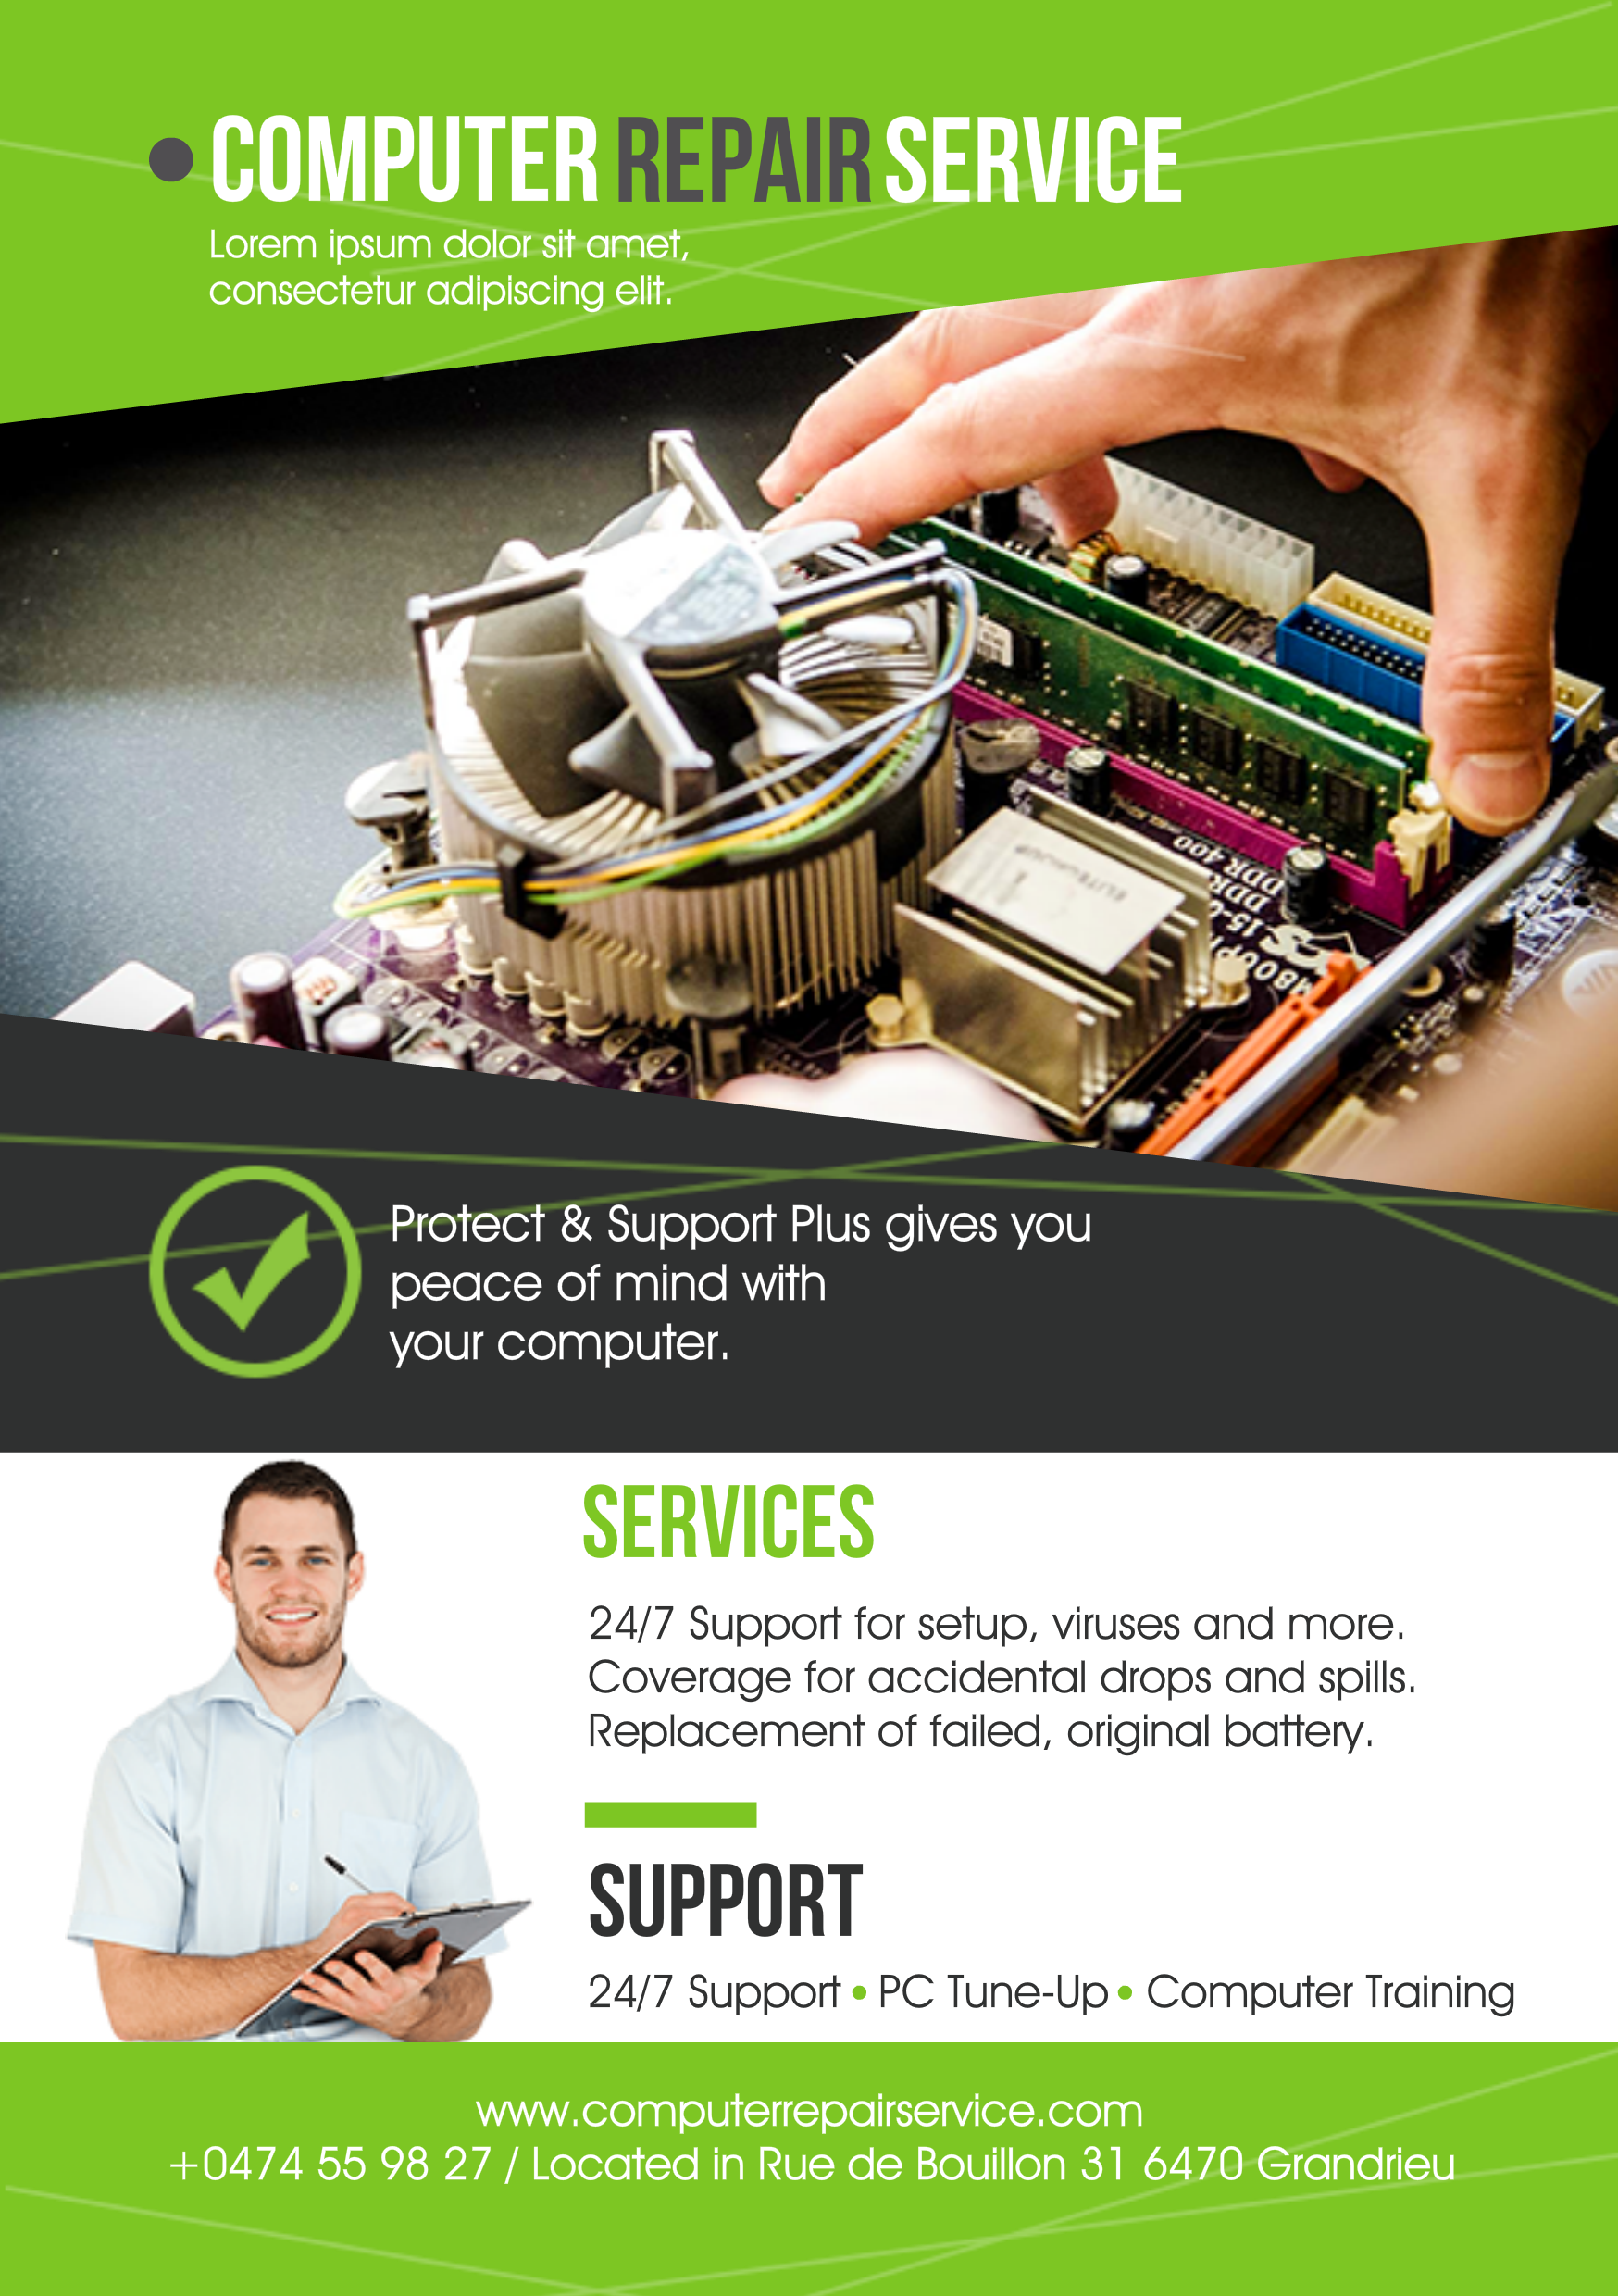 Computer Repair A Promotional Flyer HttpPremadevideosComA